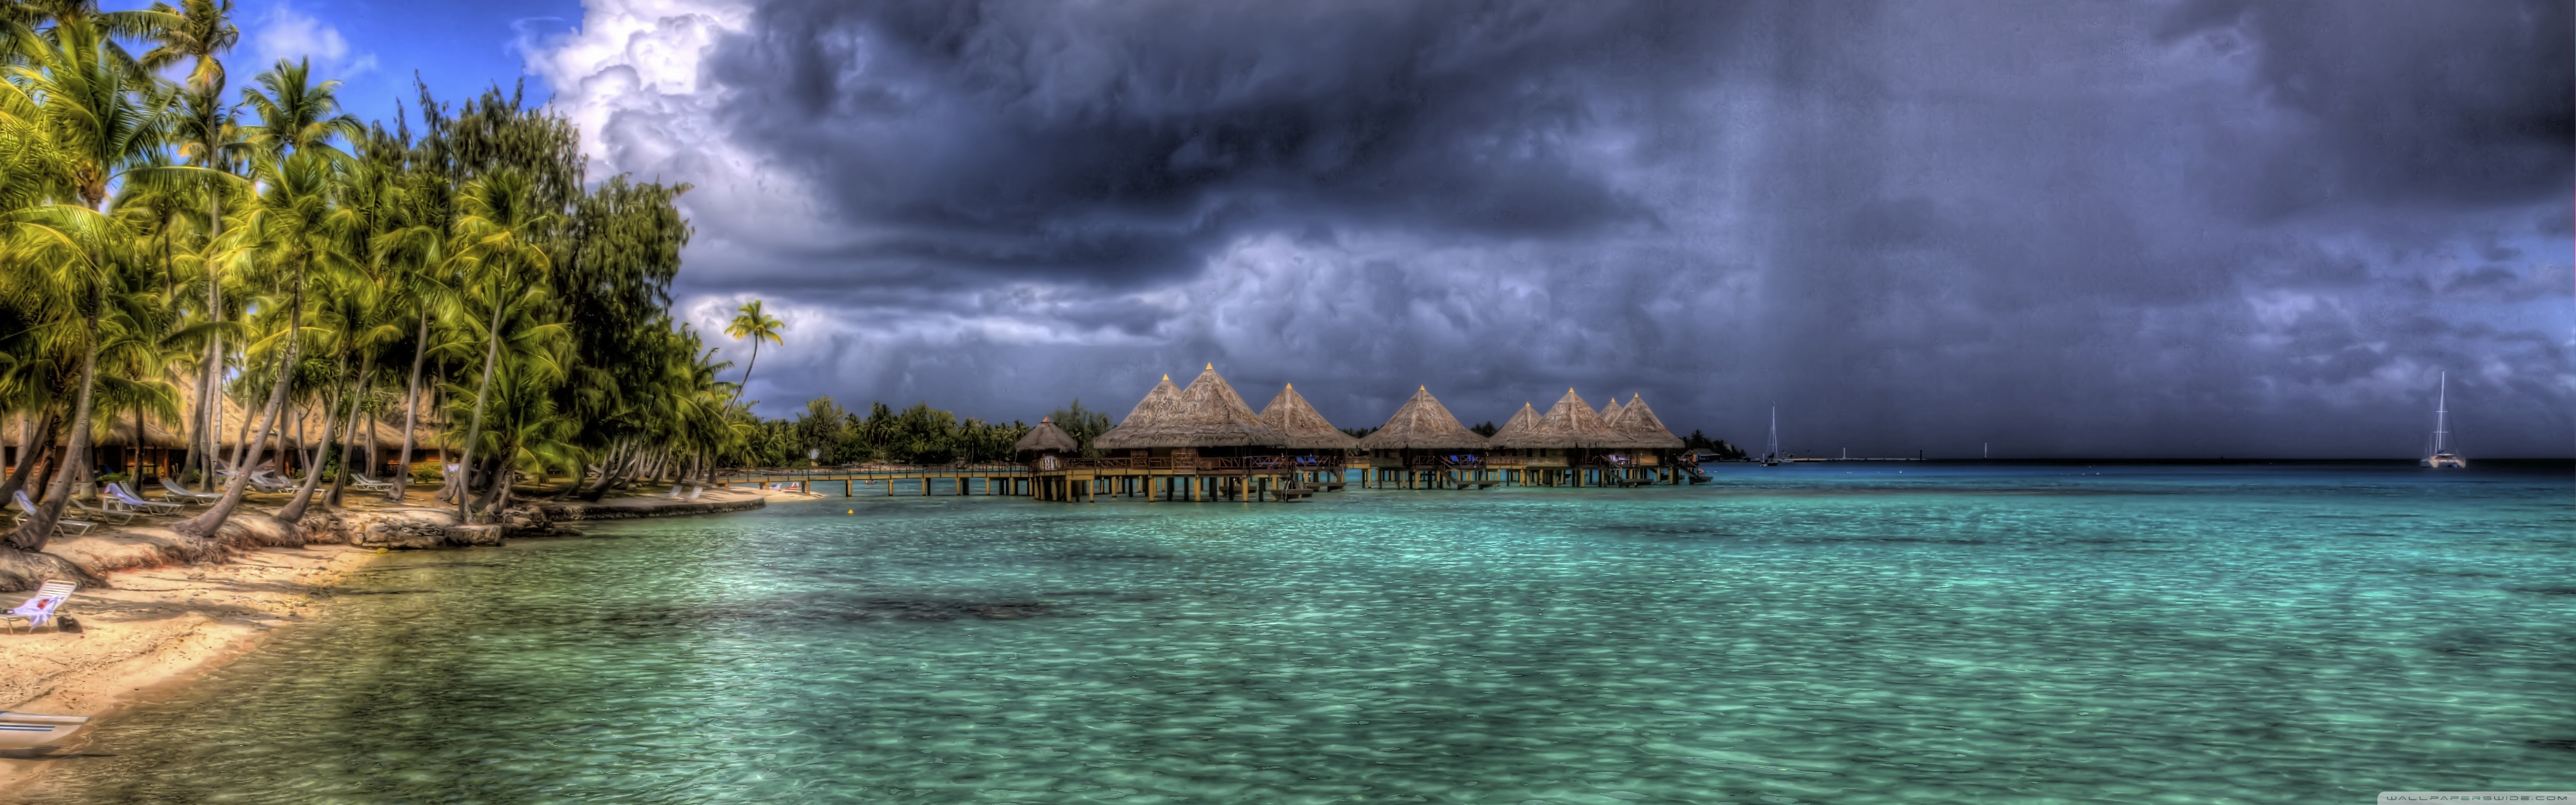 Water Bungalows HDR 4K HD Desktop Wallpaper for Dual Monitor 5120x1600